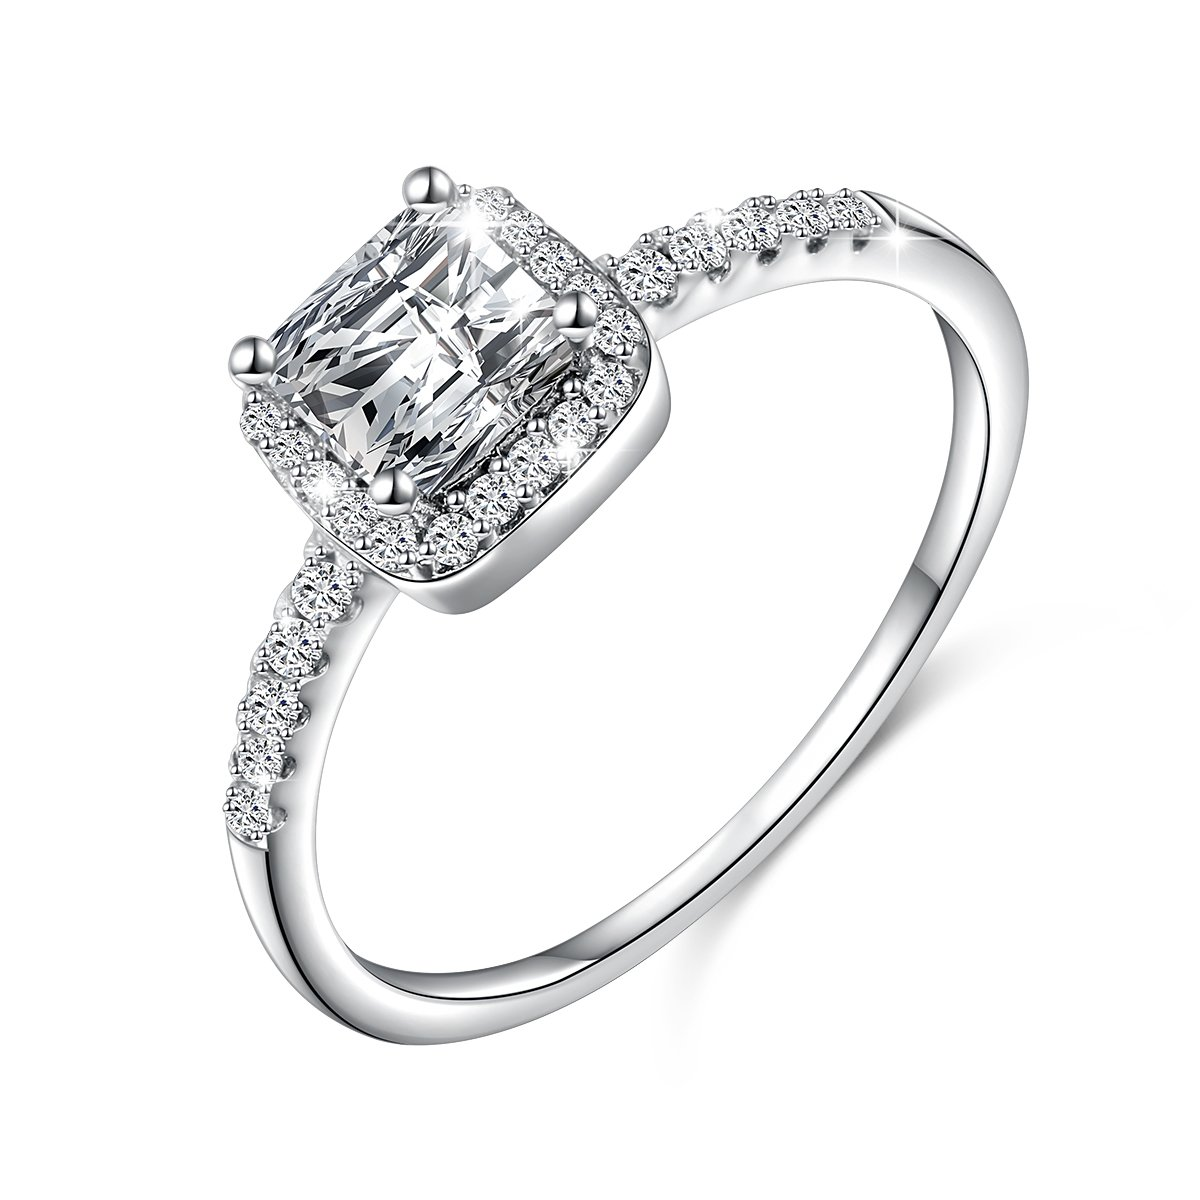 LINLIN FINE JEWELRY 925 Sterling Silver Women Wedding Ring Round Brilliant Cubic Zirconia Engagement Promise Anniversary Ring Solitaire Wedding Bridal Set,Size 7